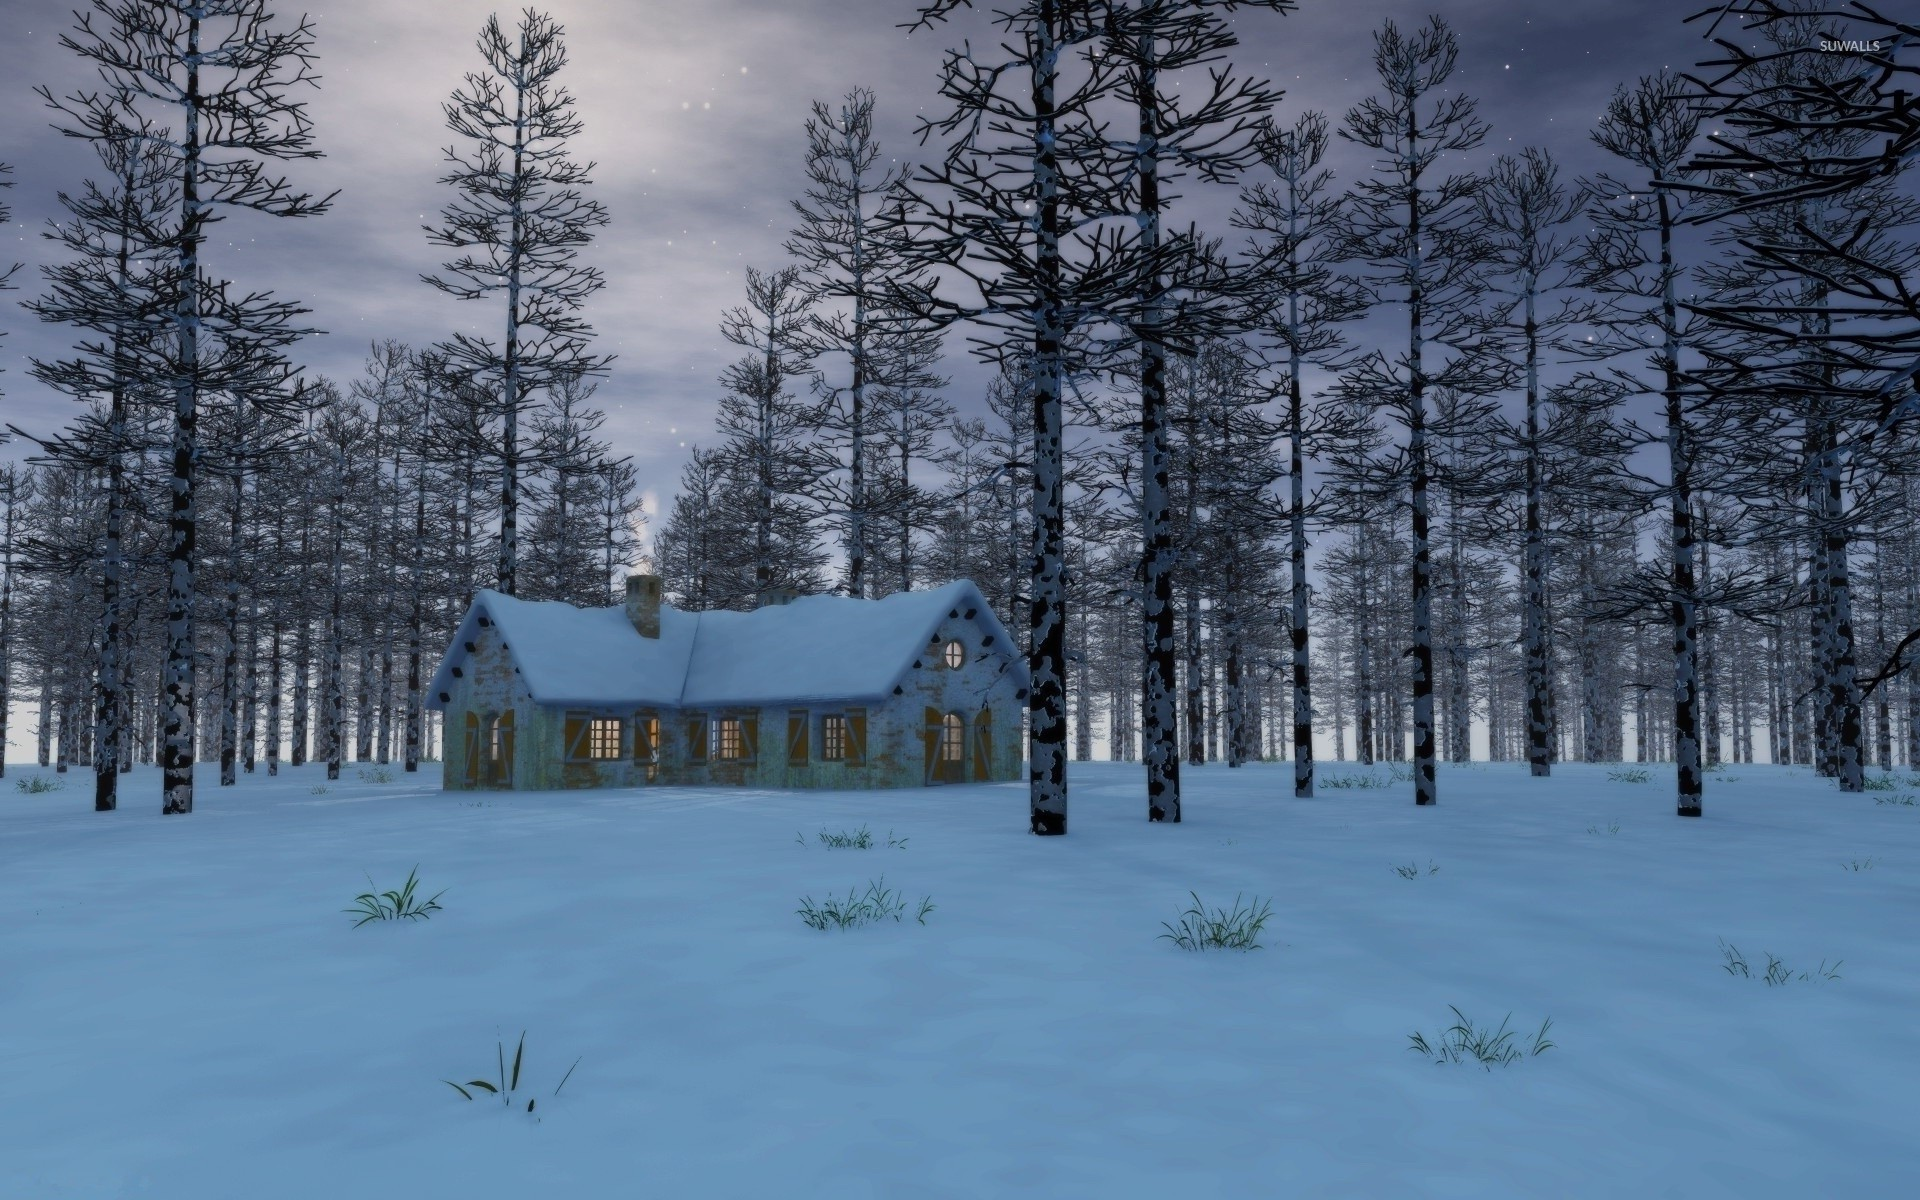 Snow on the house in the forest wallpaper